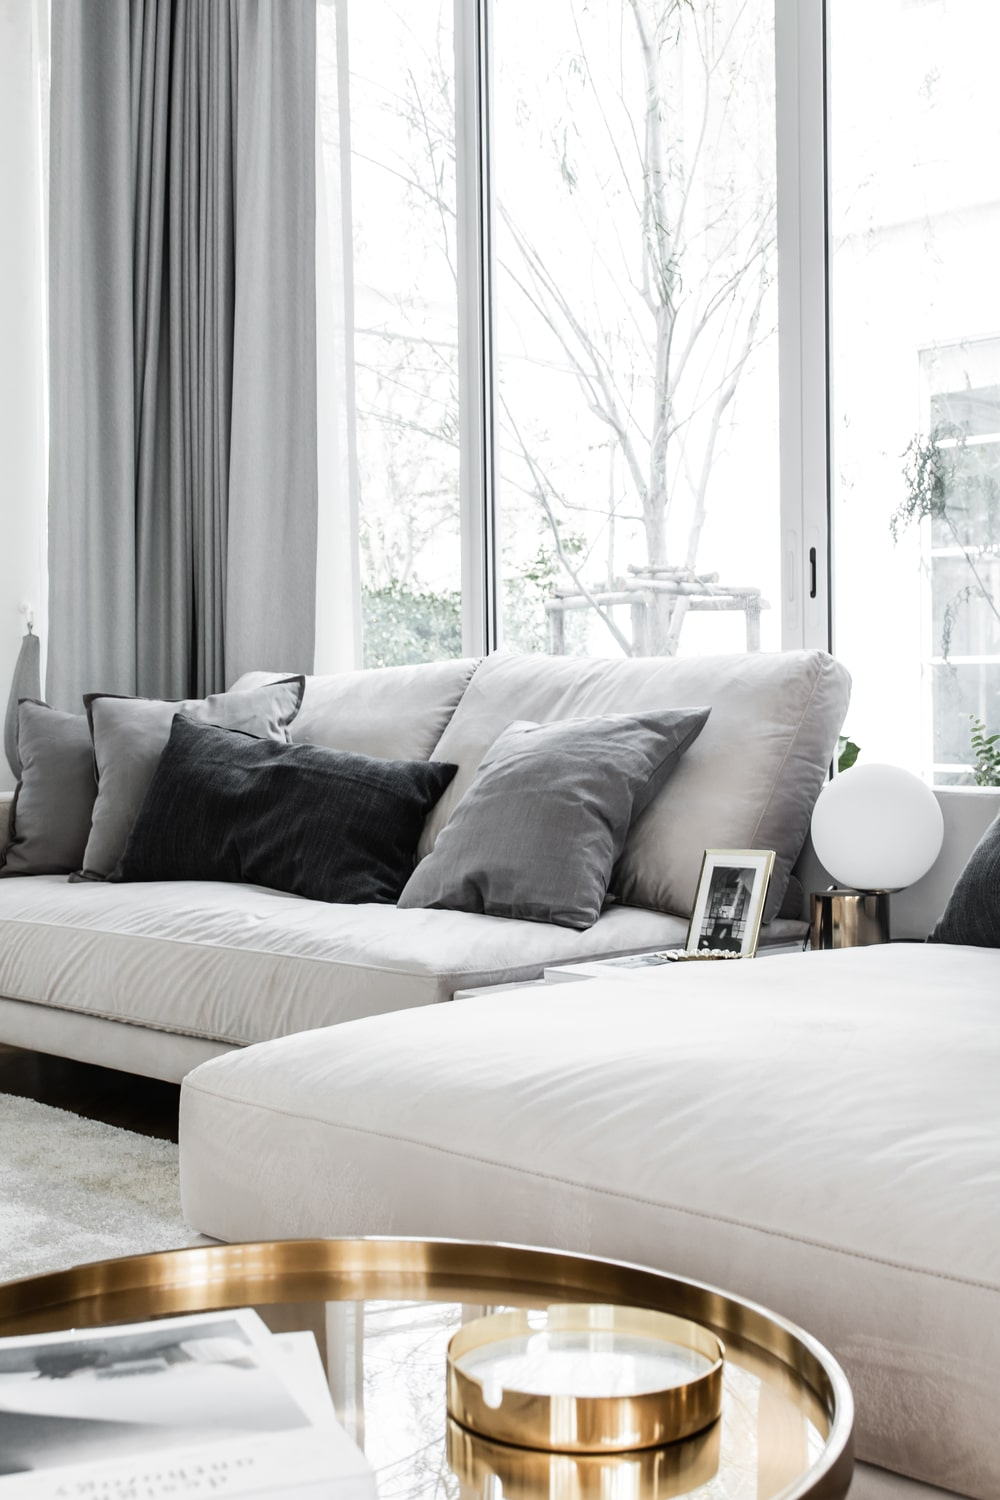 The coffee table is surrounded by light beige sofas.